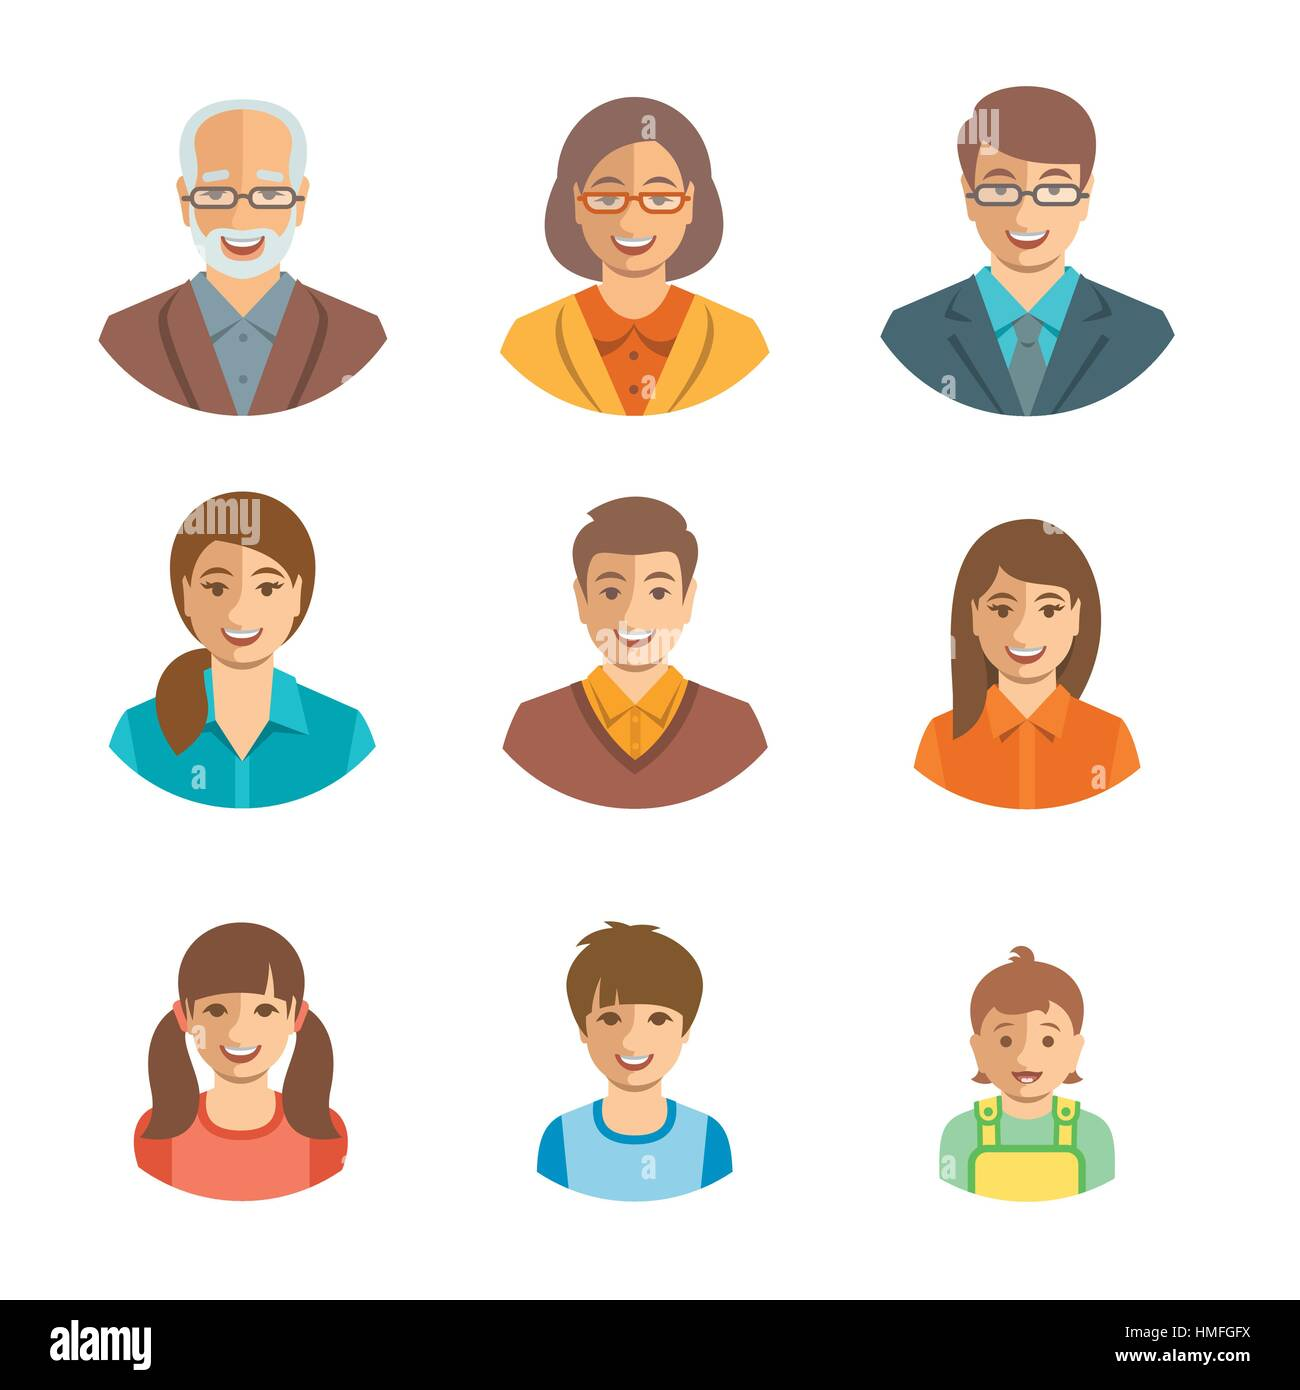 family members happy faces vector flat avatars people generation rh alamy com victor facebook vector facts